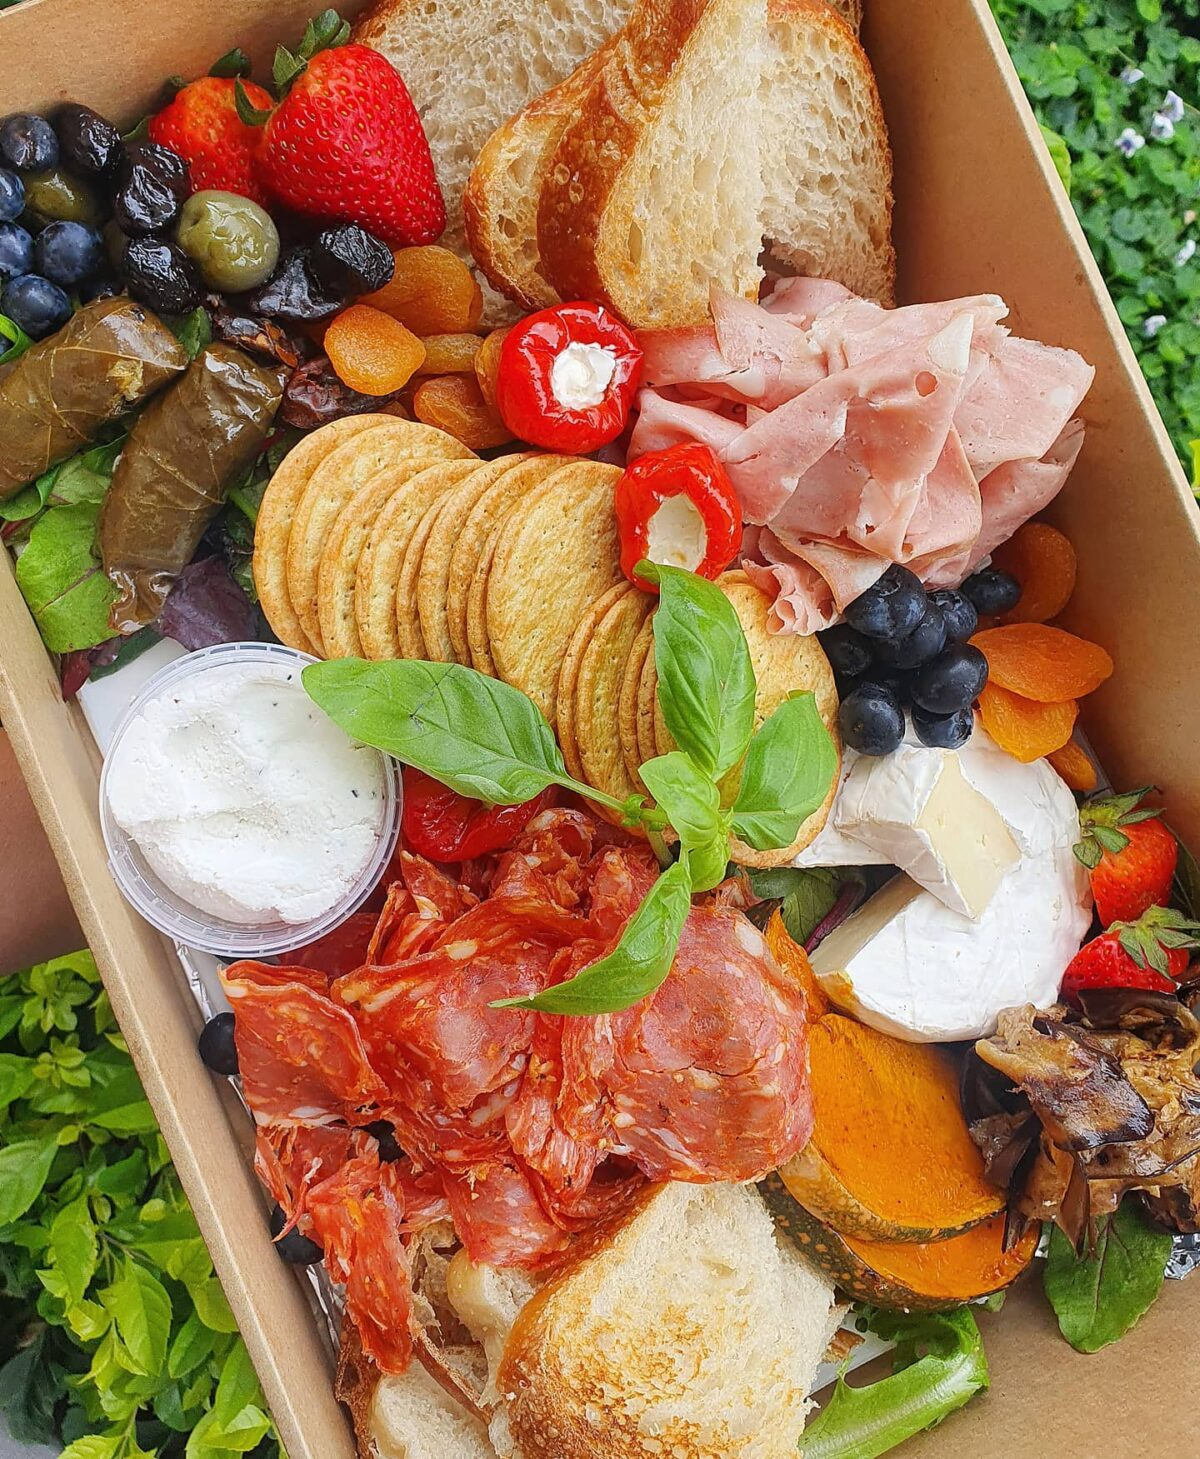 Grazing box from Deli & Dine Wollongong